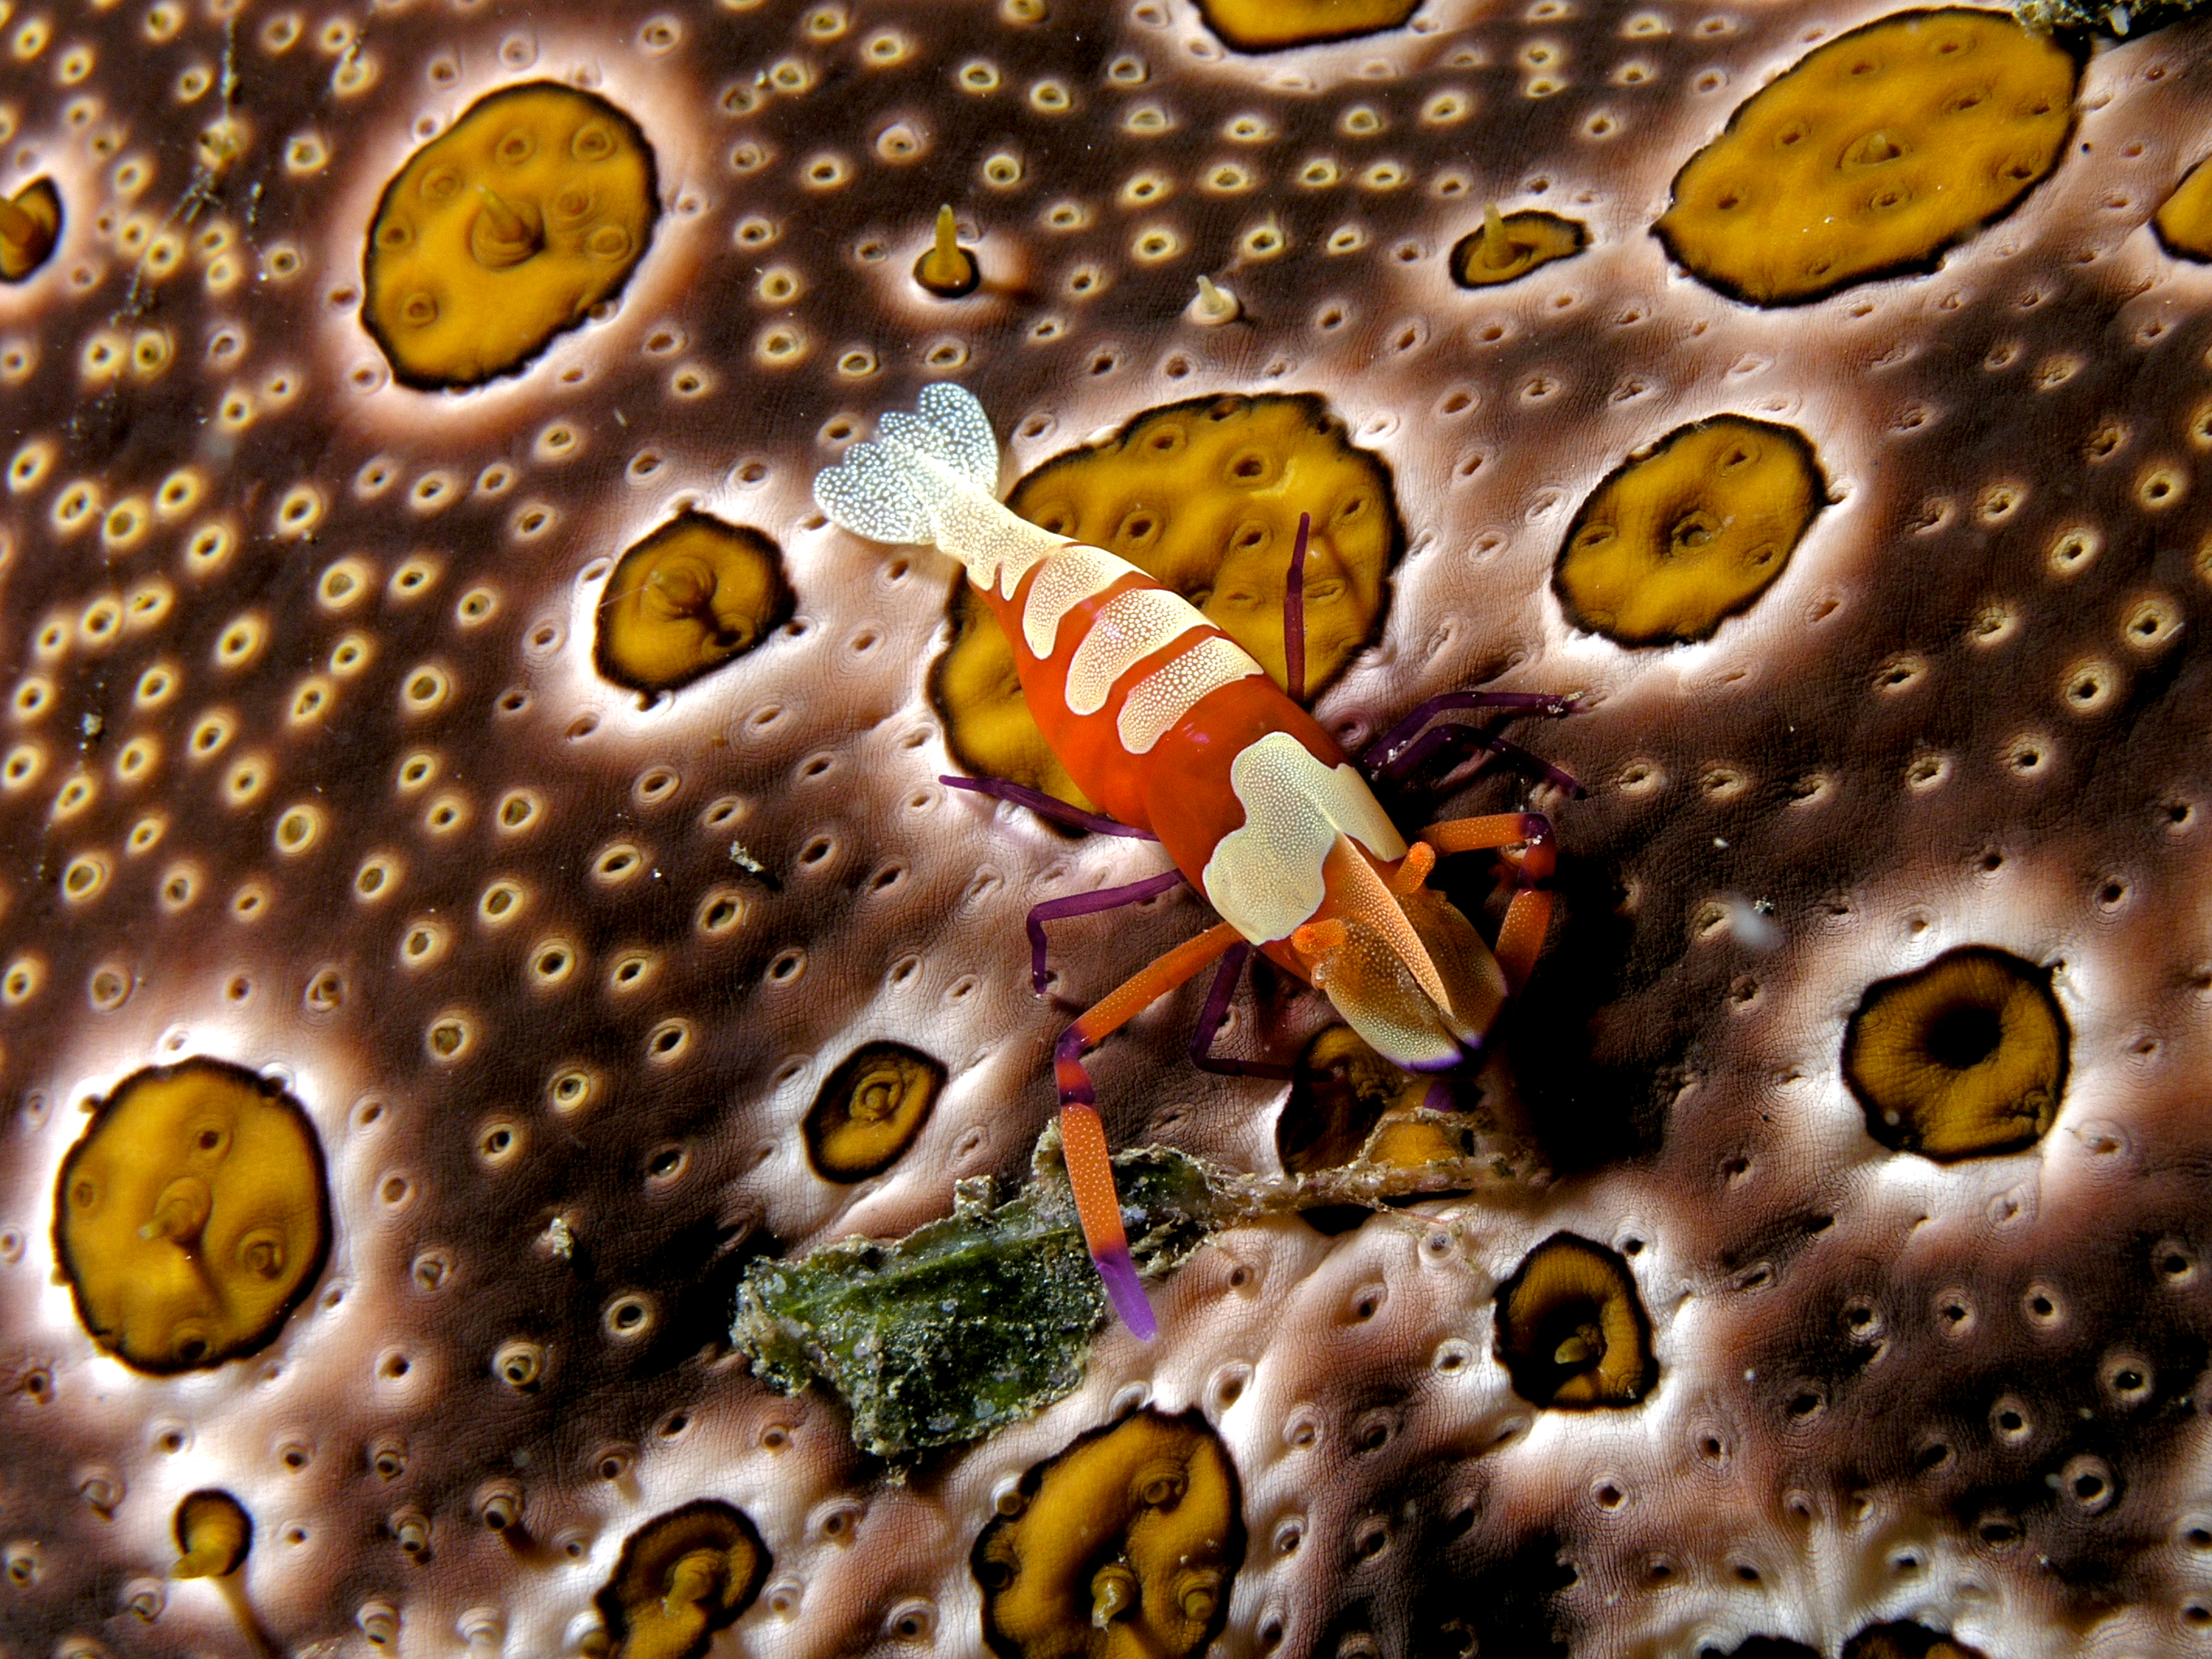 Shrimp Wikipedia 60 Parts Diagram As Well Marlin Model 336 On This Small Periclimenes Imperator Emperor Is Perched A Sea Cucumber With Which It Has Symbiotic Relationship